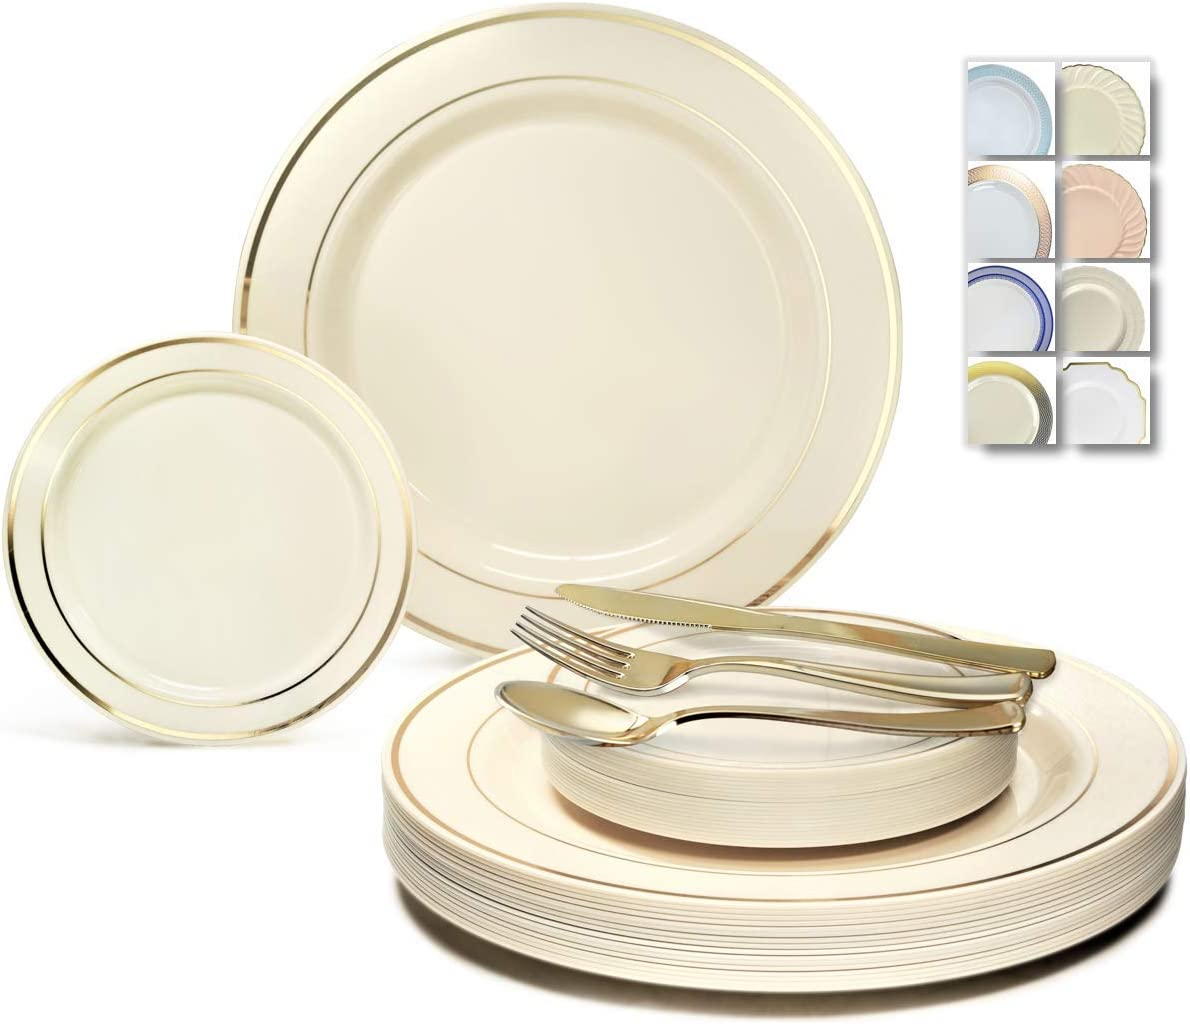 OCCASIONS 300 Pcs Set & 60 Guest Wedding Disposable Plastic Plate & Silverware Combo Set (Ivory & Gold Rim plates, Gold Silverware) 61VvY4nYSlL